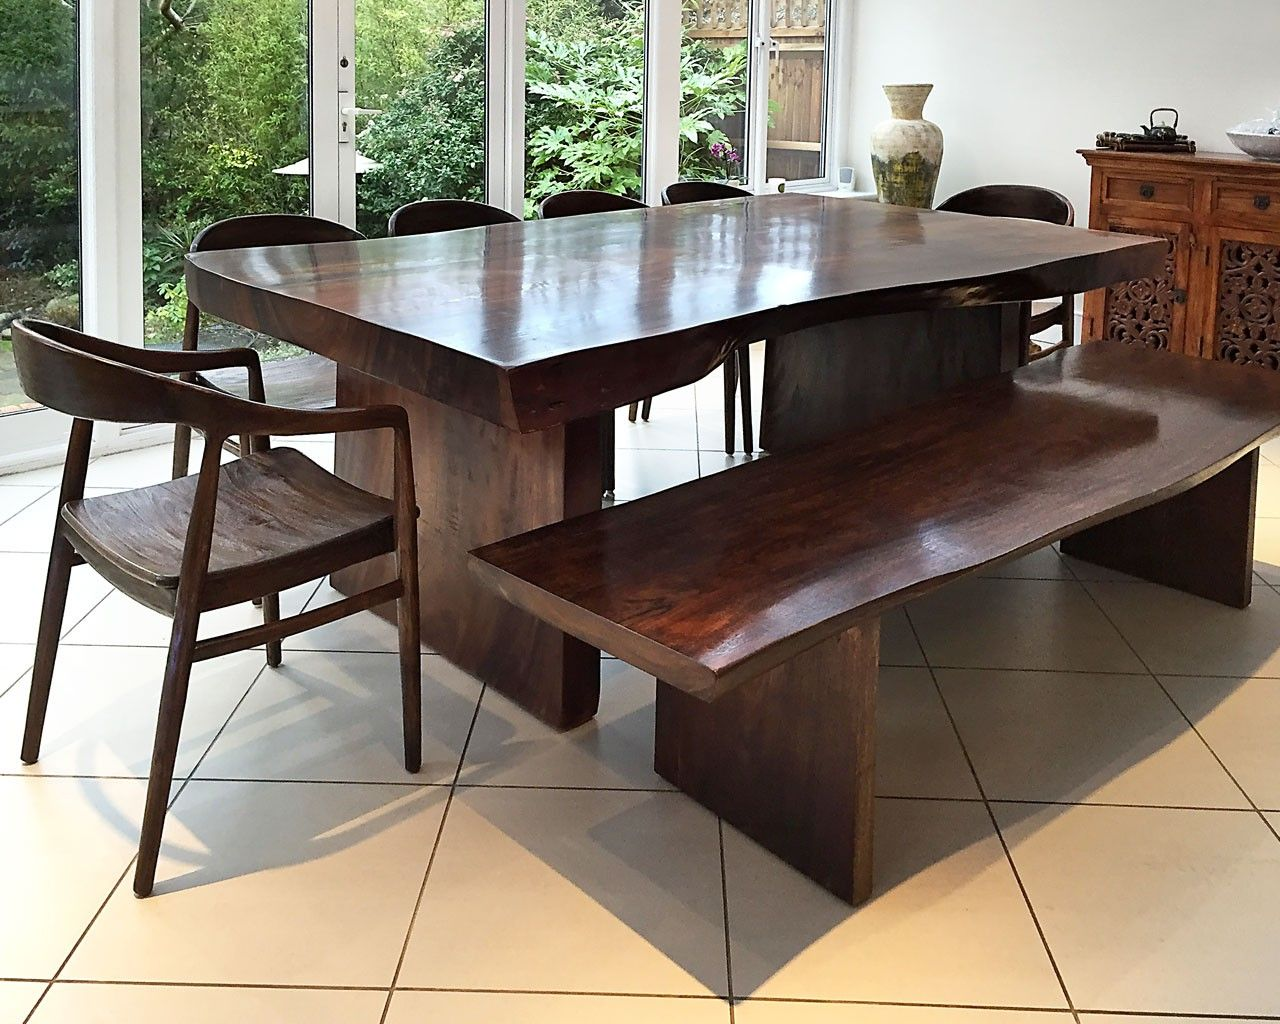 Bespoke Suar Dining Table   Stained dark with matching Suar Bench and  contemporary Teak chairs. Bespoke Suar Dining Table   Stained dark with matching Suar Bench